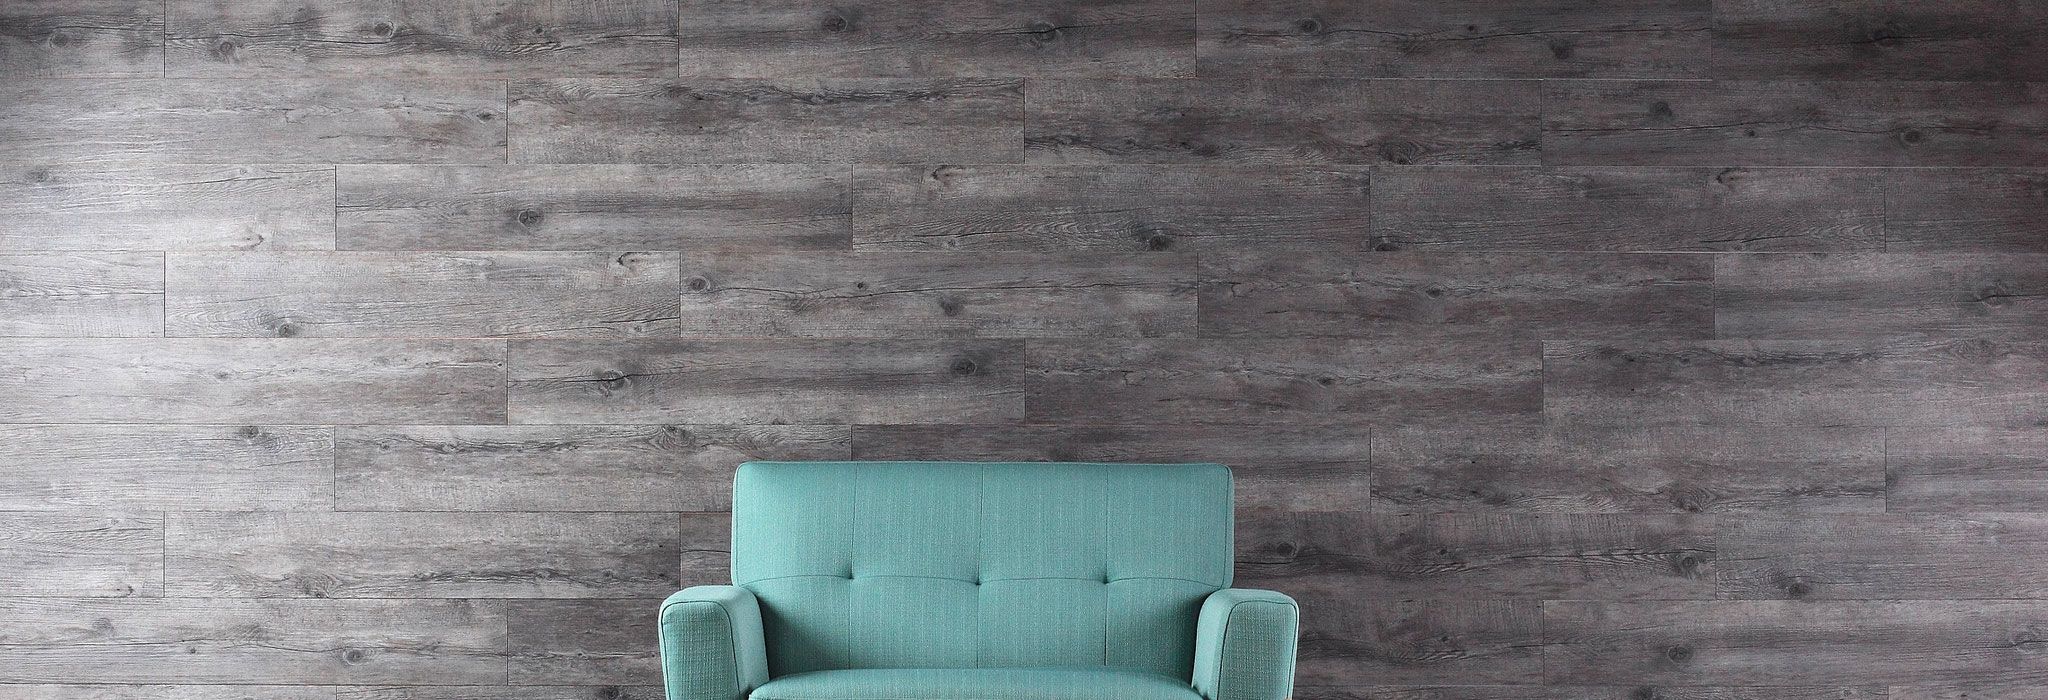 Wooden background with a sofa placed in front